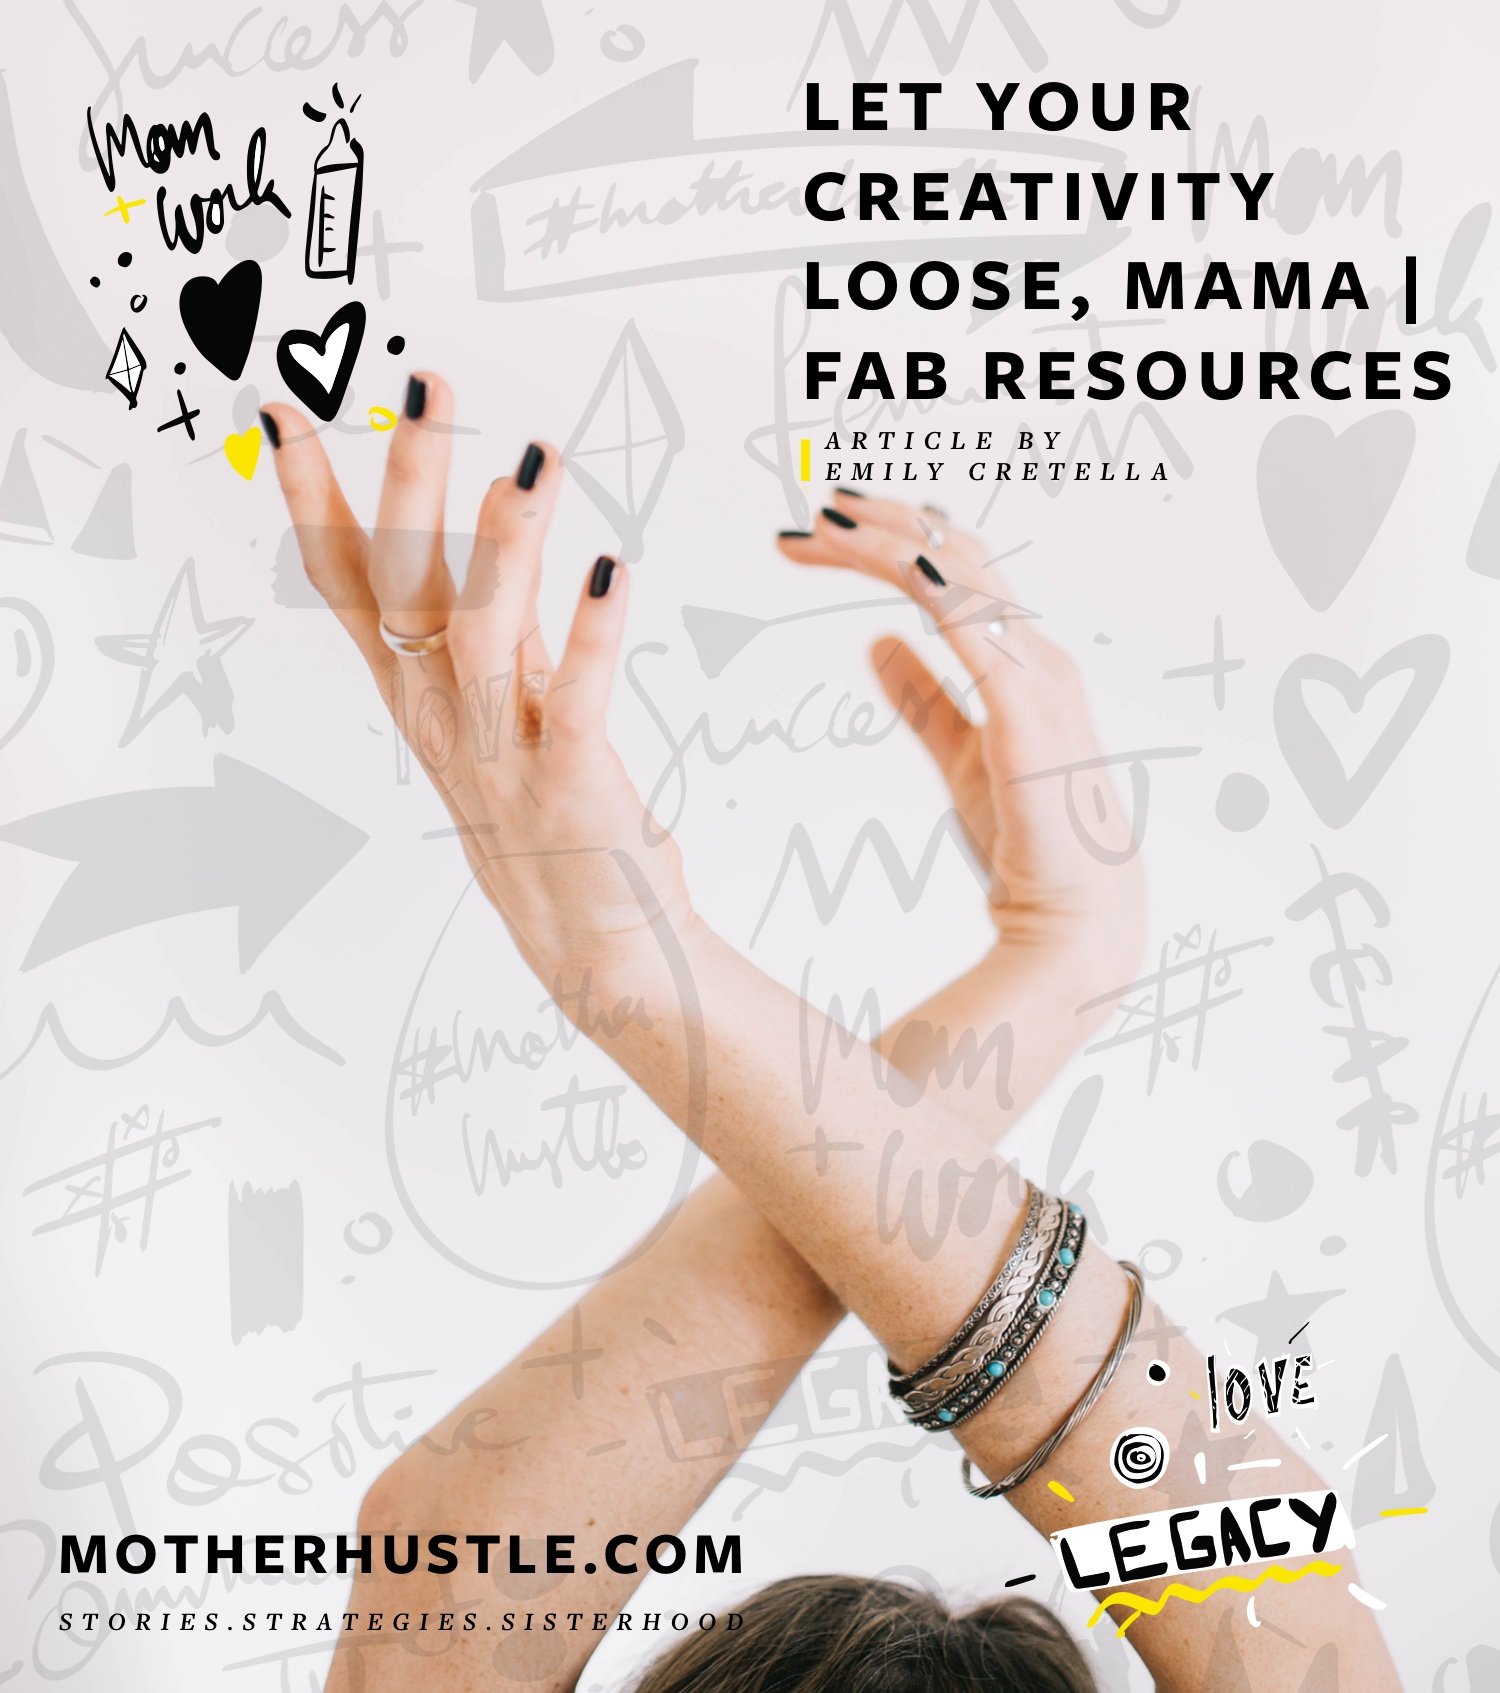 Let Your Creativity Loose, Mama- Fab Resources